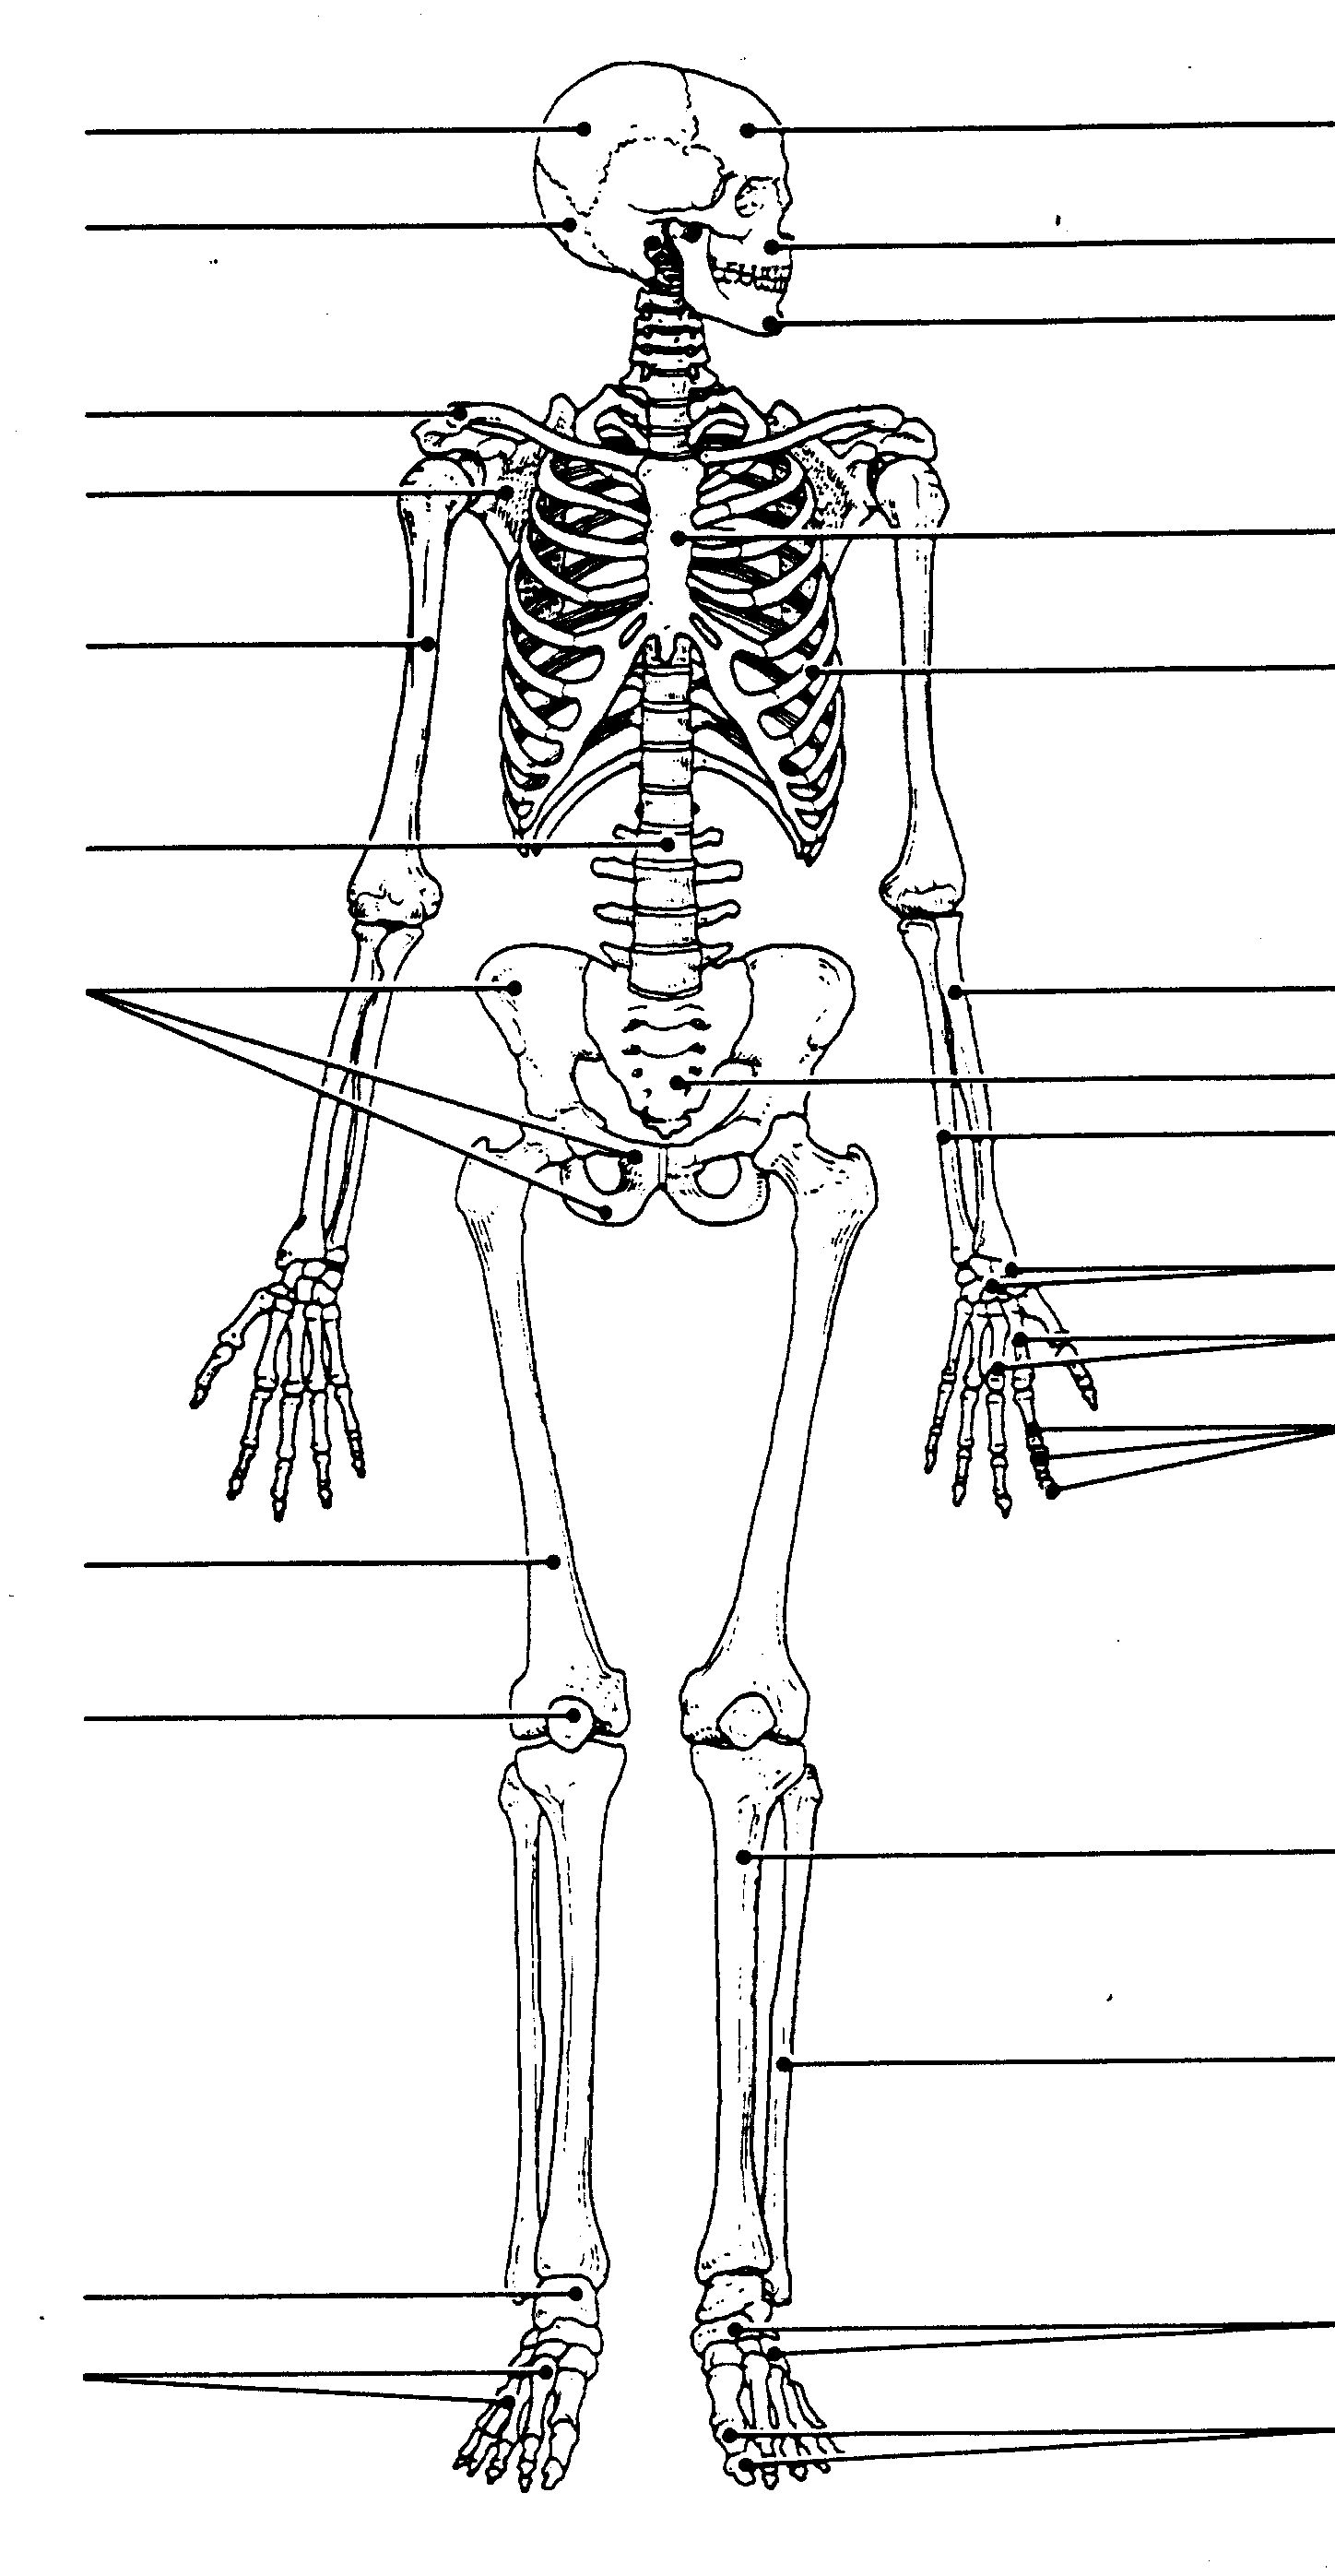 small resolution of unlabeled human skeleton diagram unlabeled human skeleton diagram blank human skeleton diagram unlabeled human skeleton